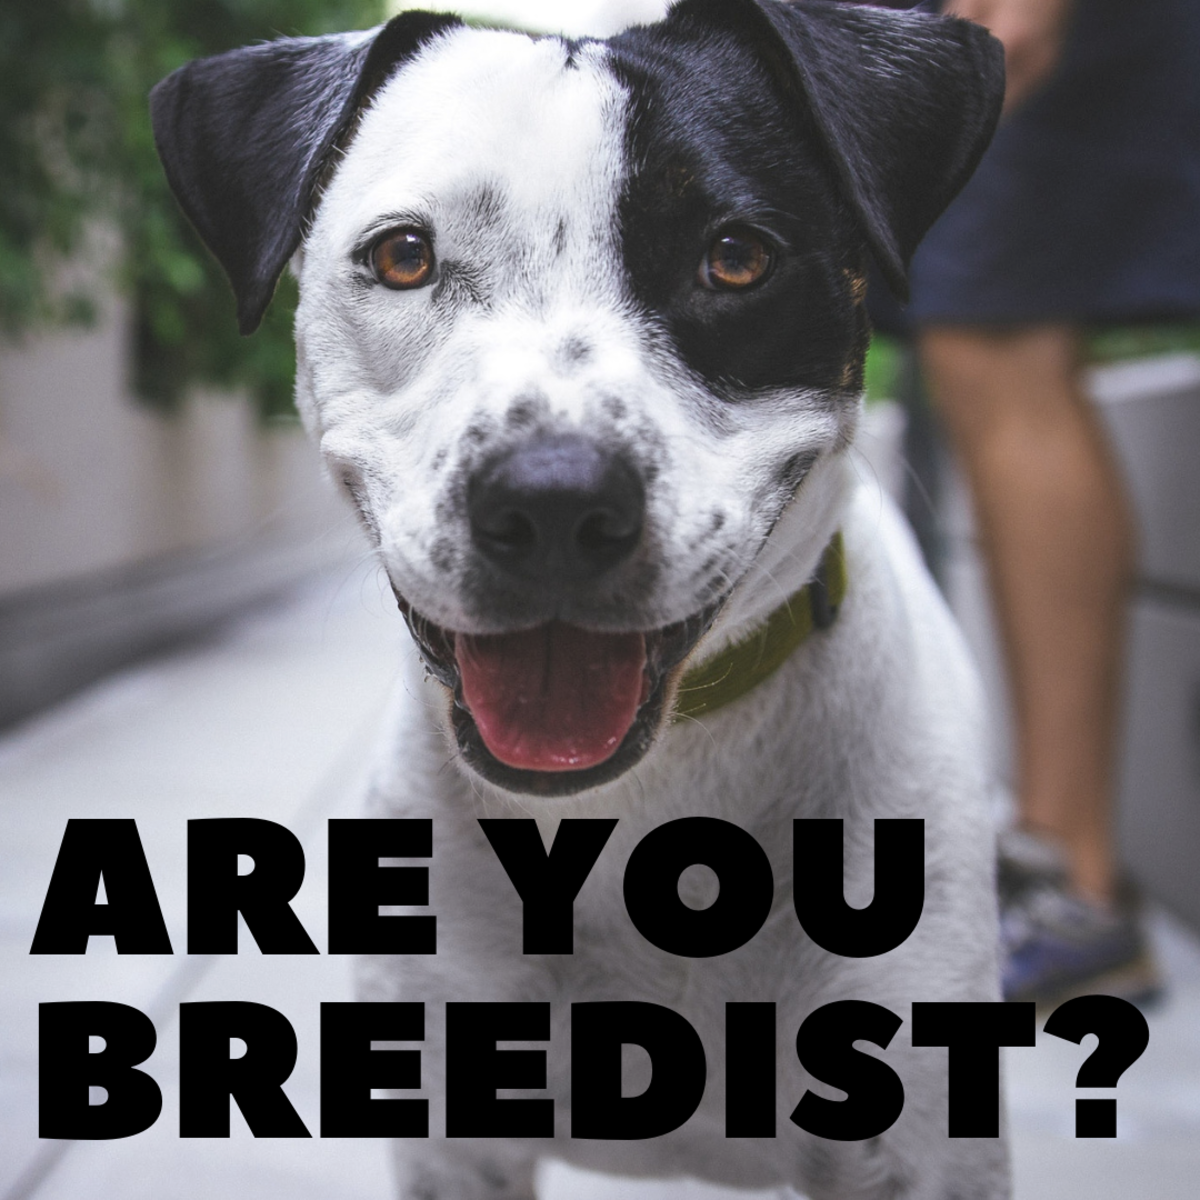 What Is Breedism? Are You Breedist?